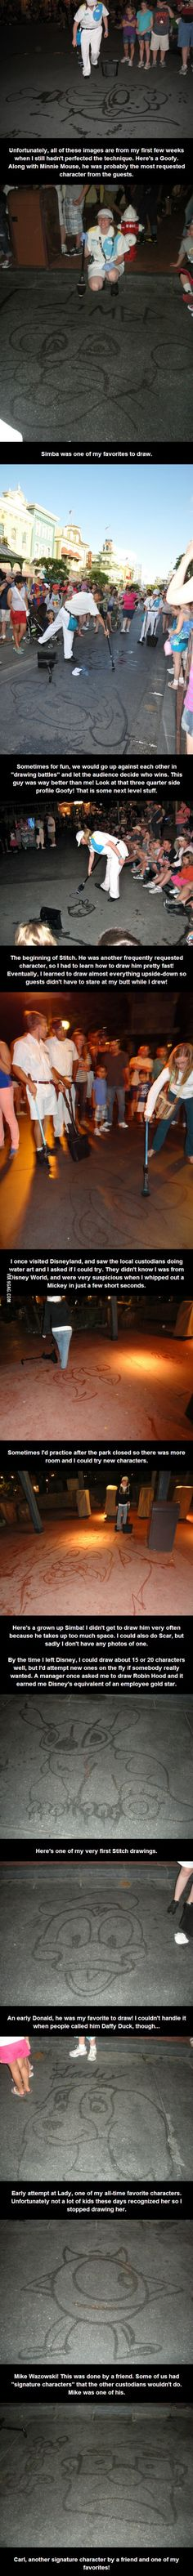 Even Disney world JANITORS are magical! ^_^ (I had no idea that they did this, that's really neat!)